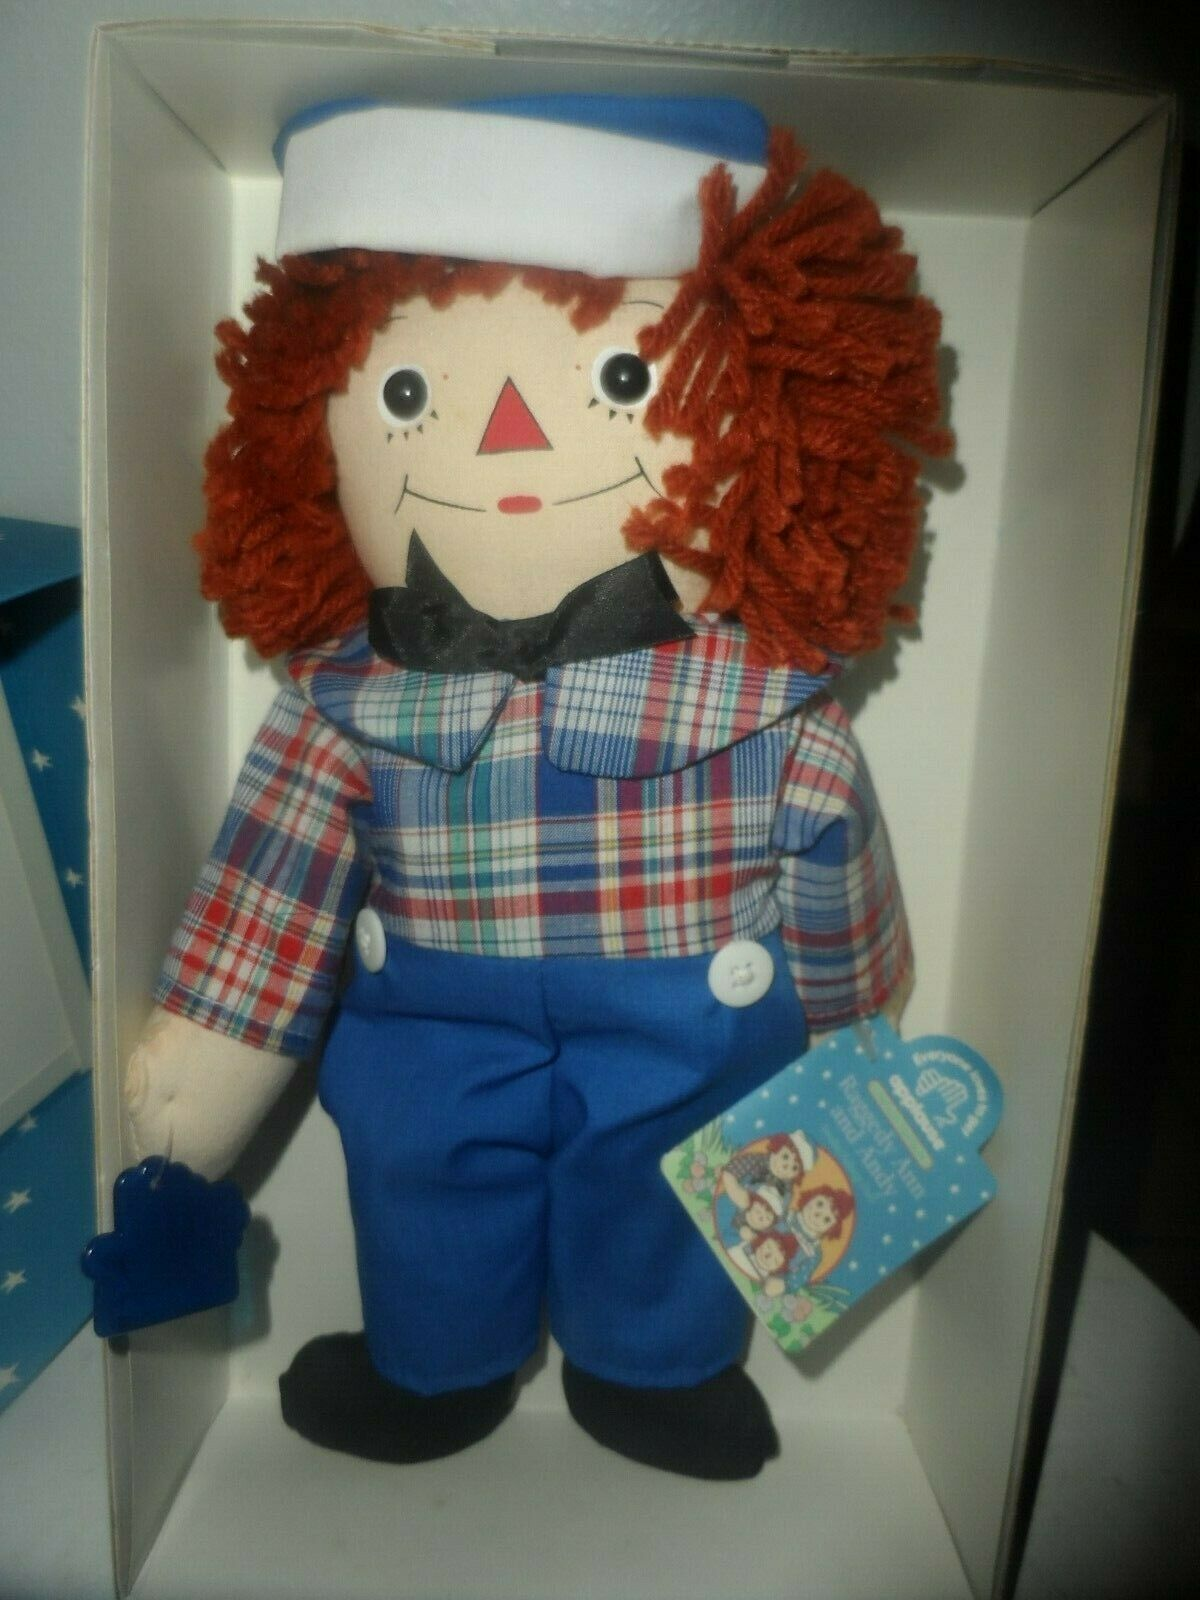 LIMITED EDITION Raggedy Andy Awake/Asleep Doll by Applause image 1